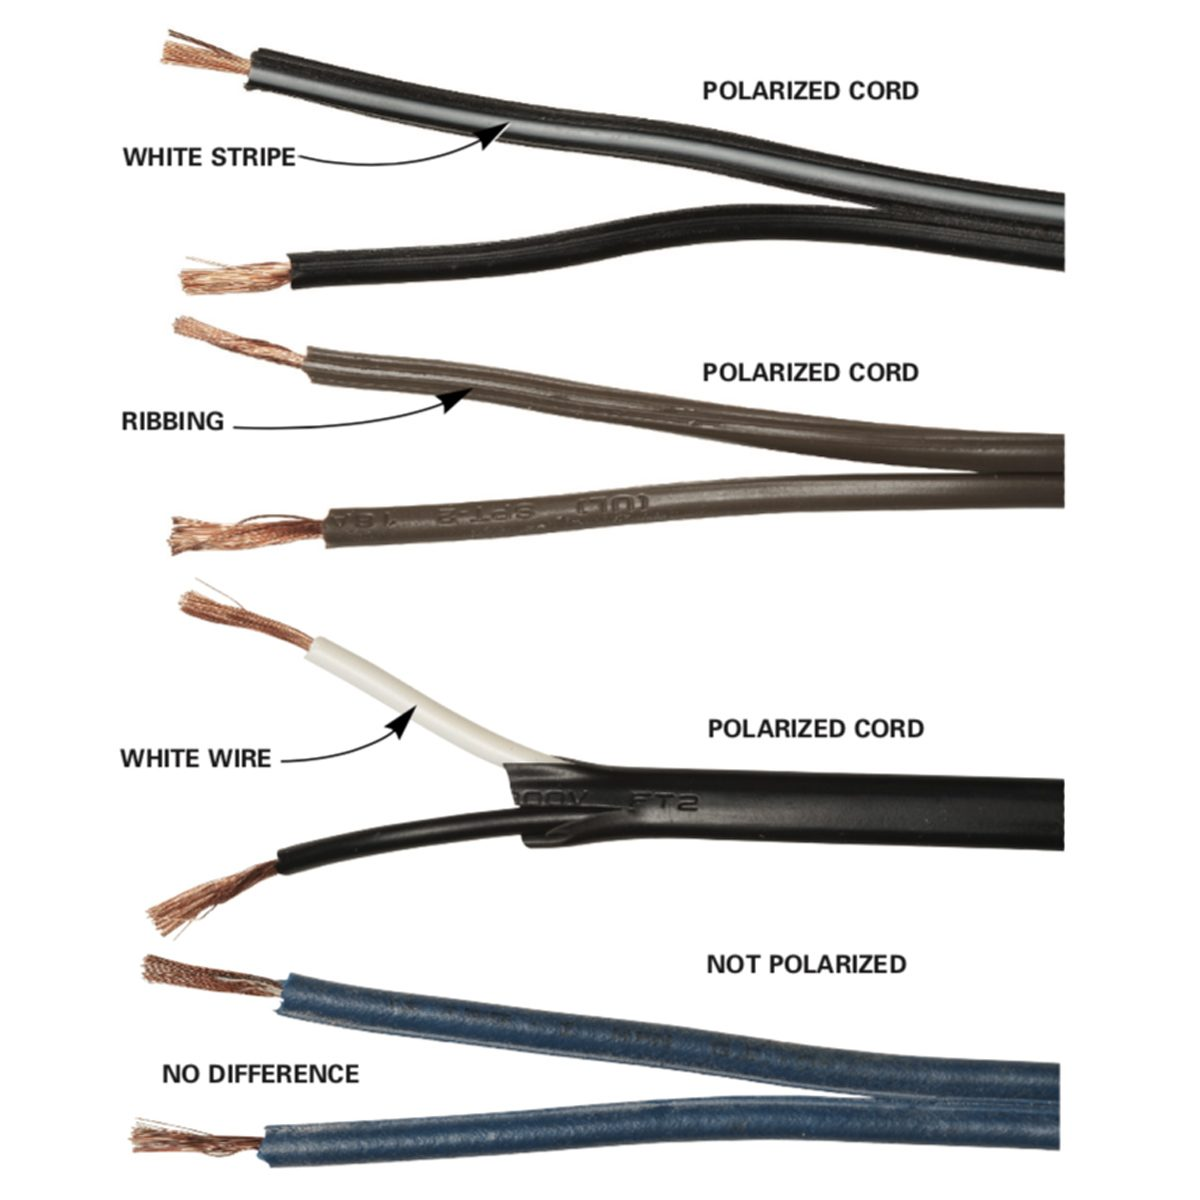 3 prong extension cord wiring diagram ford f150 radio harness fix a lamp family handyman the how to identify neutral wire